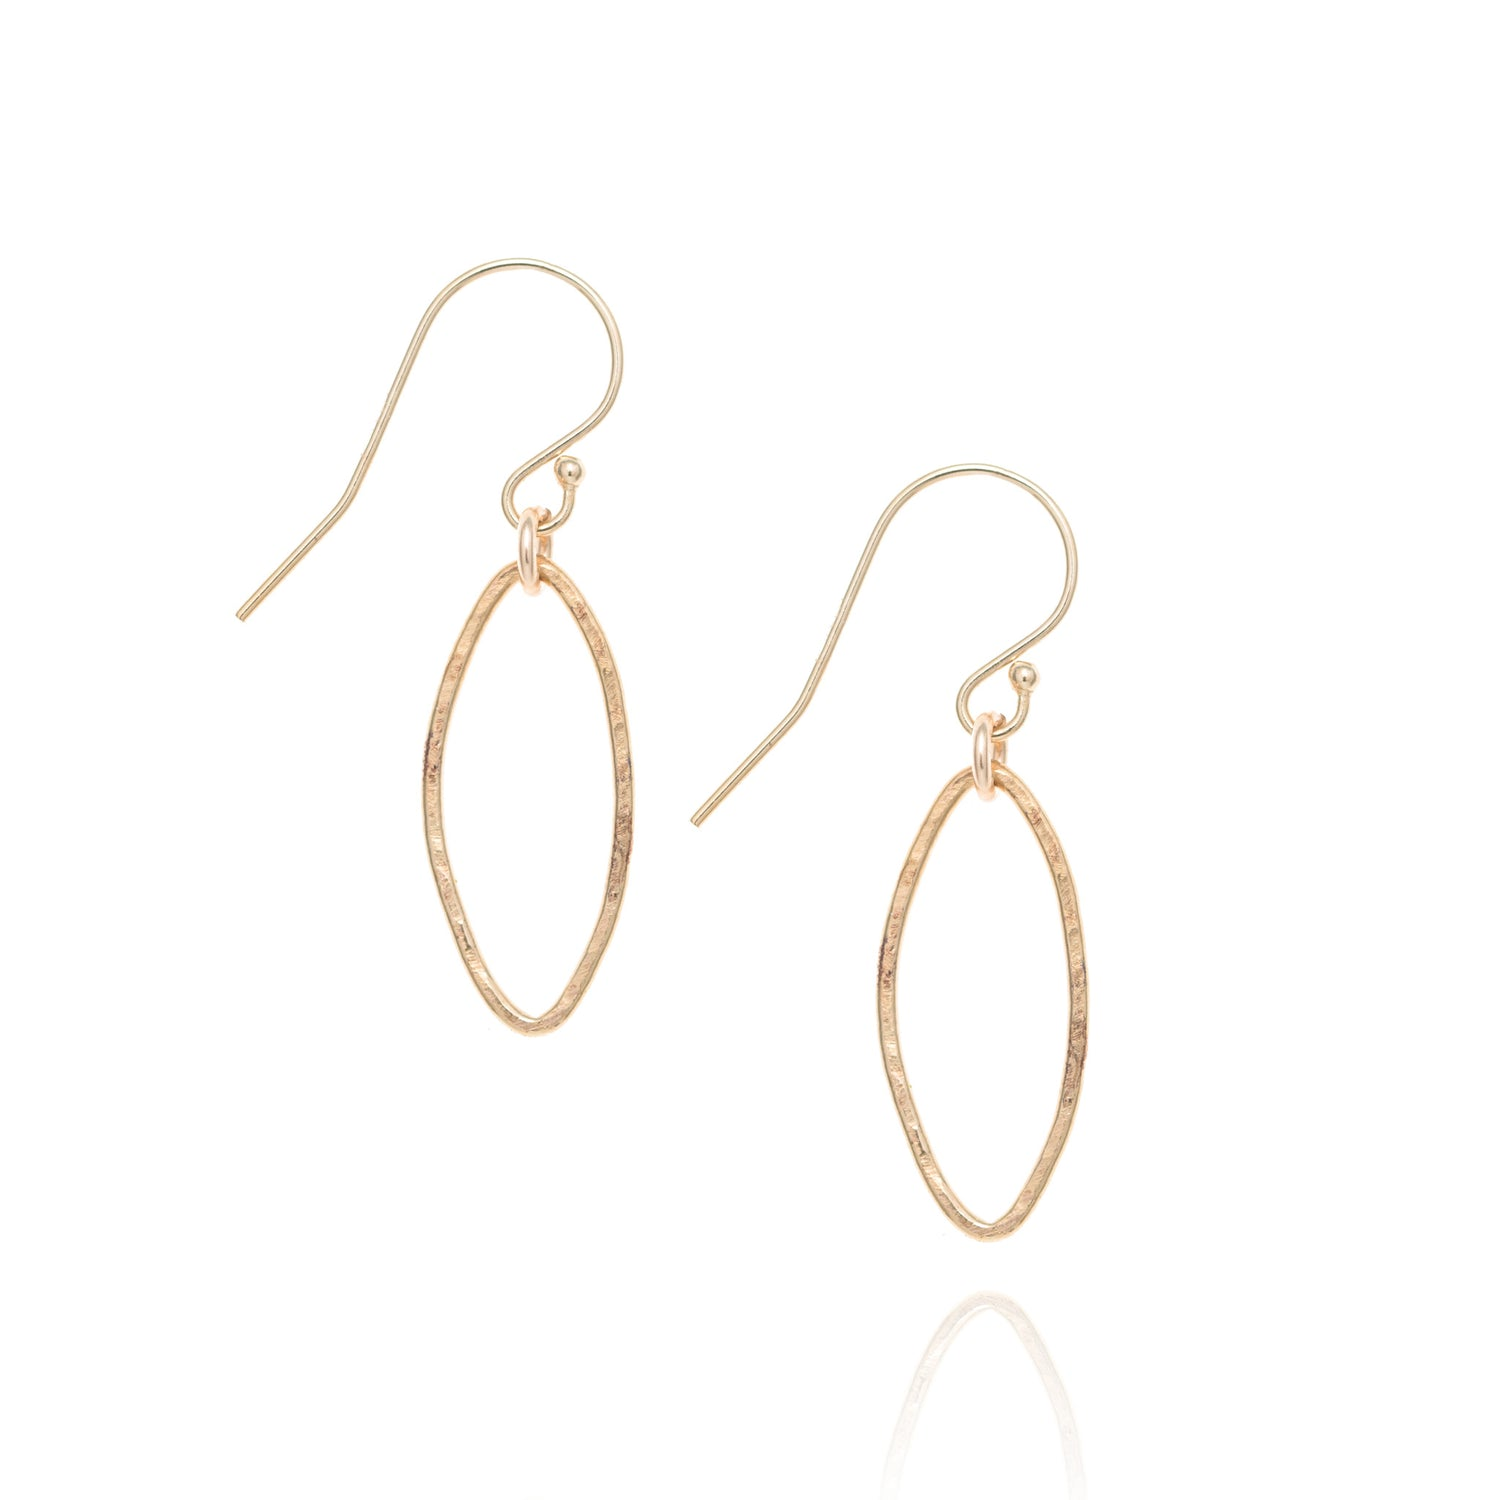 Fallen leaf earrings, gold